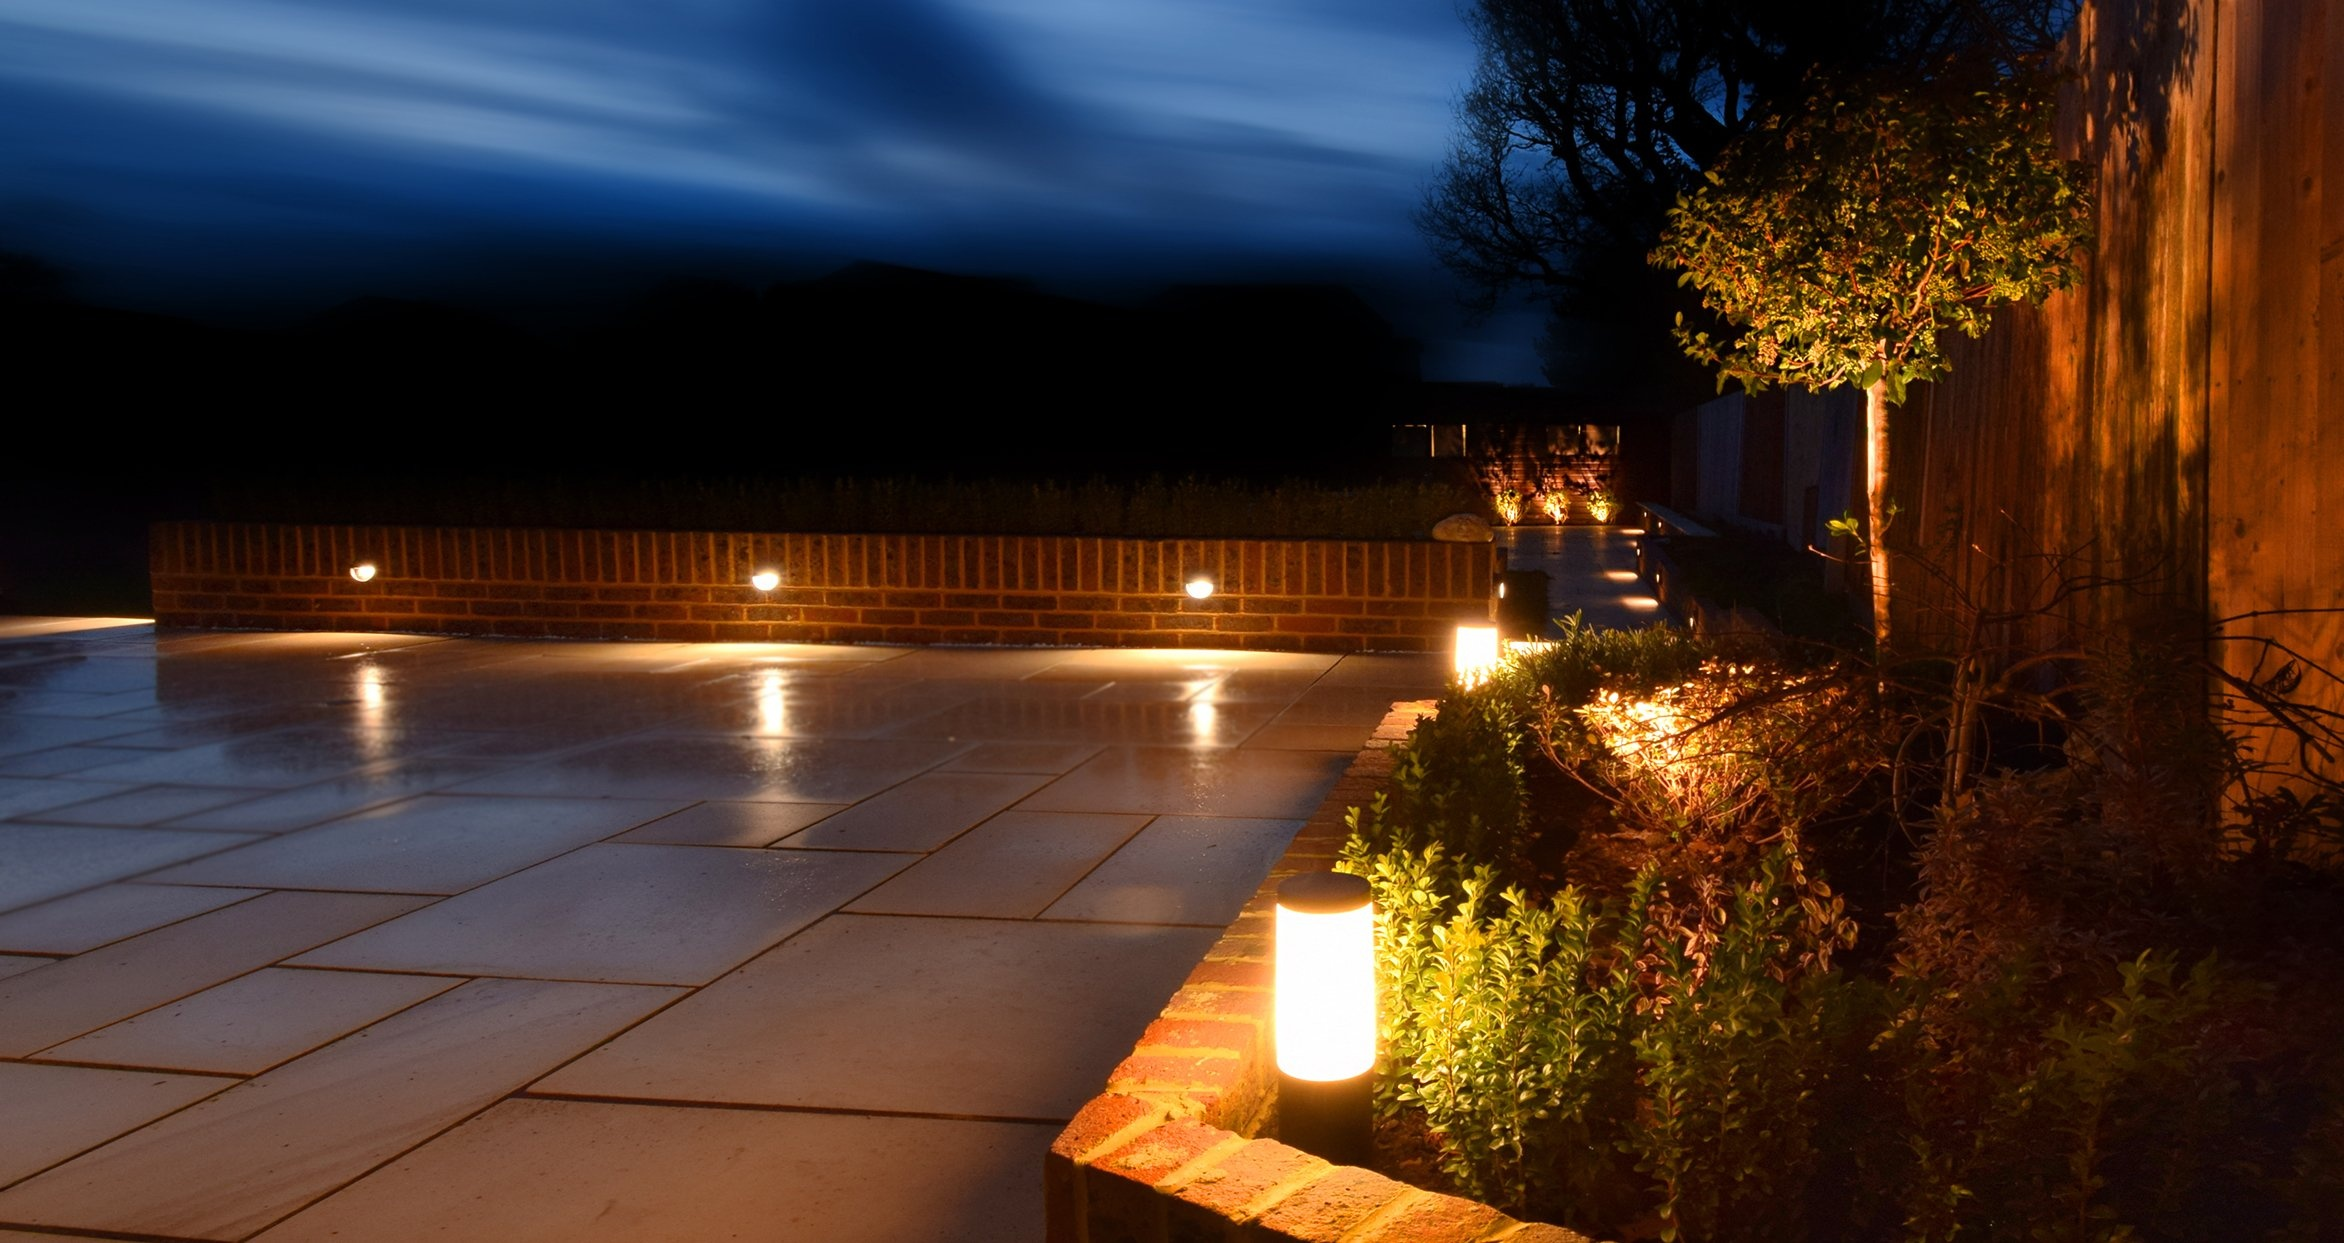 Ellumiere outdoor lighting now at Elliotts